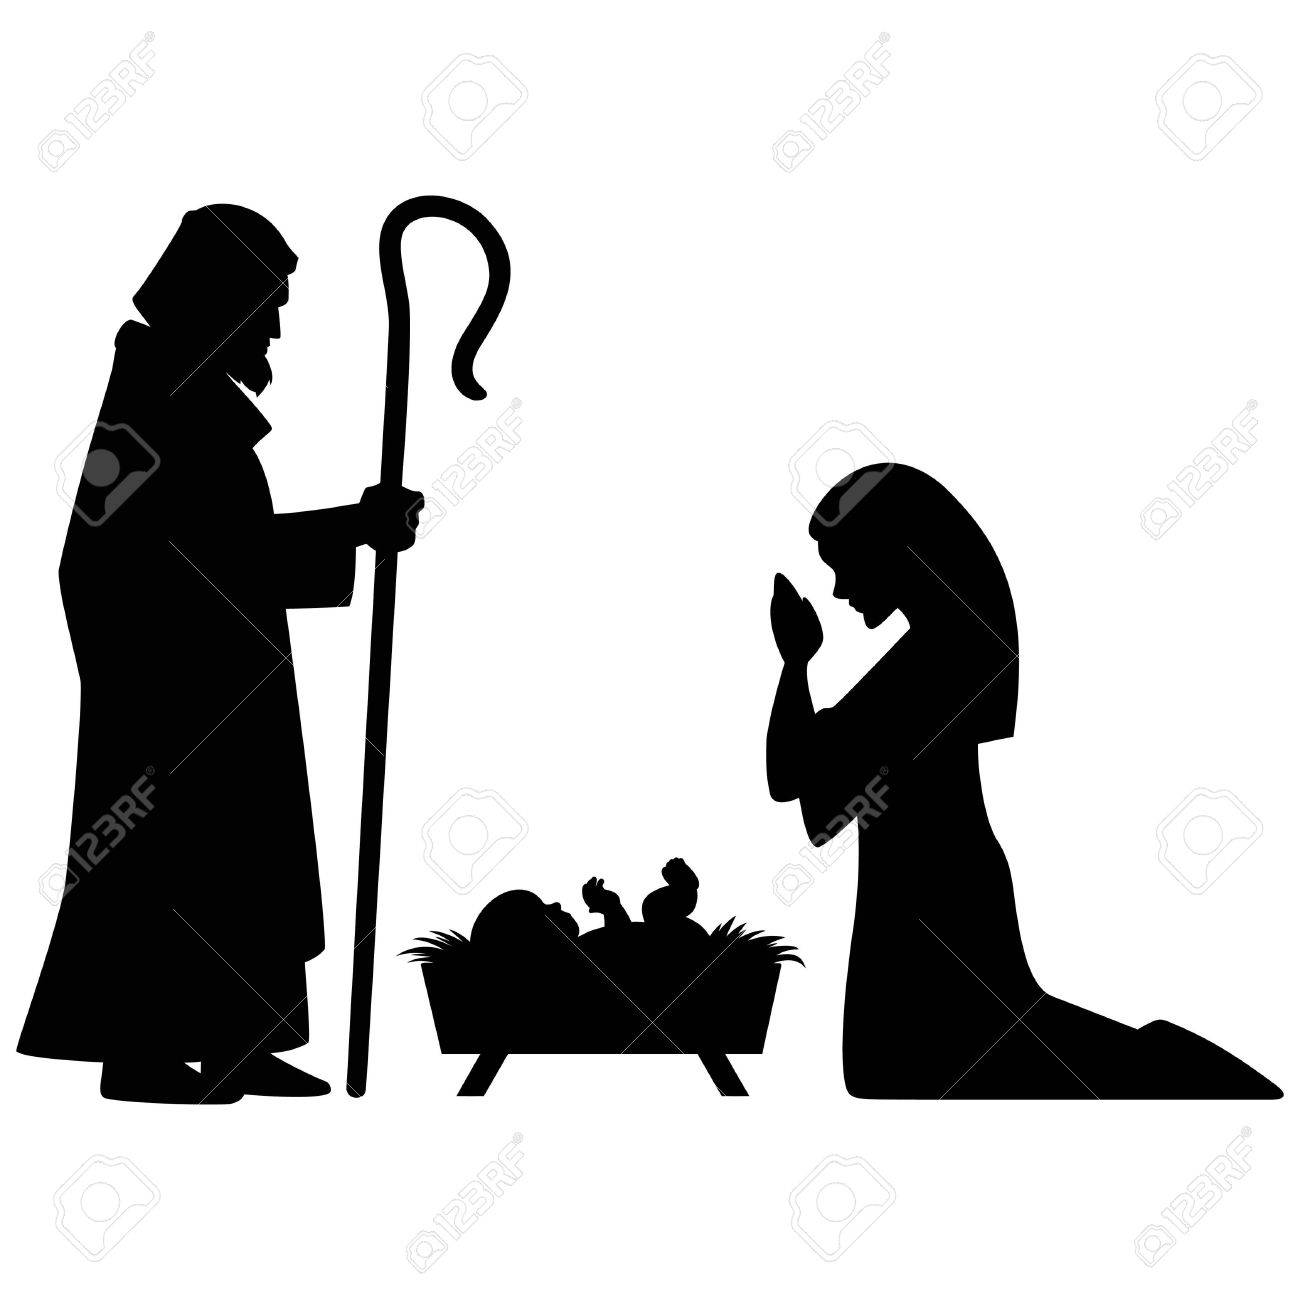 Free Mary And Joseph Clipart, Download Free Clip Art, Free Clip Art on  Clipart Library